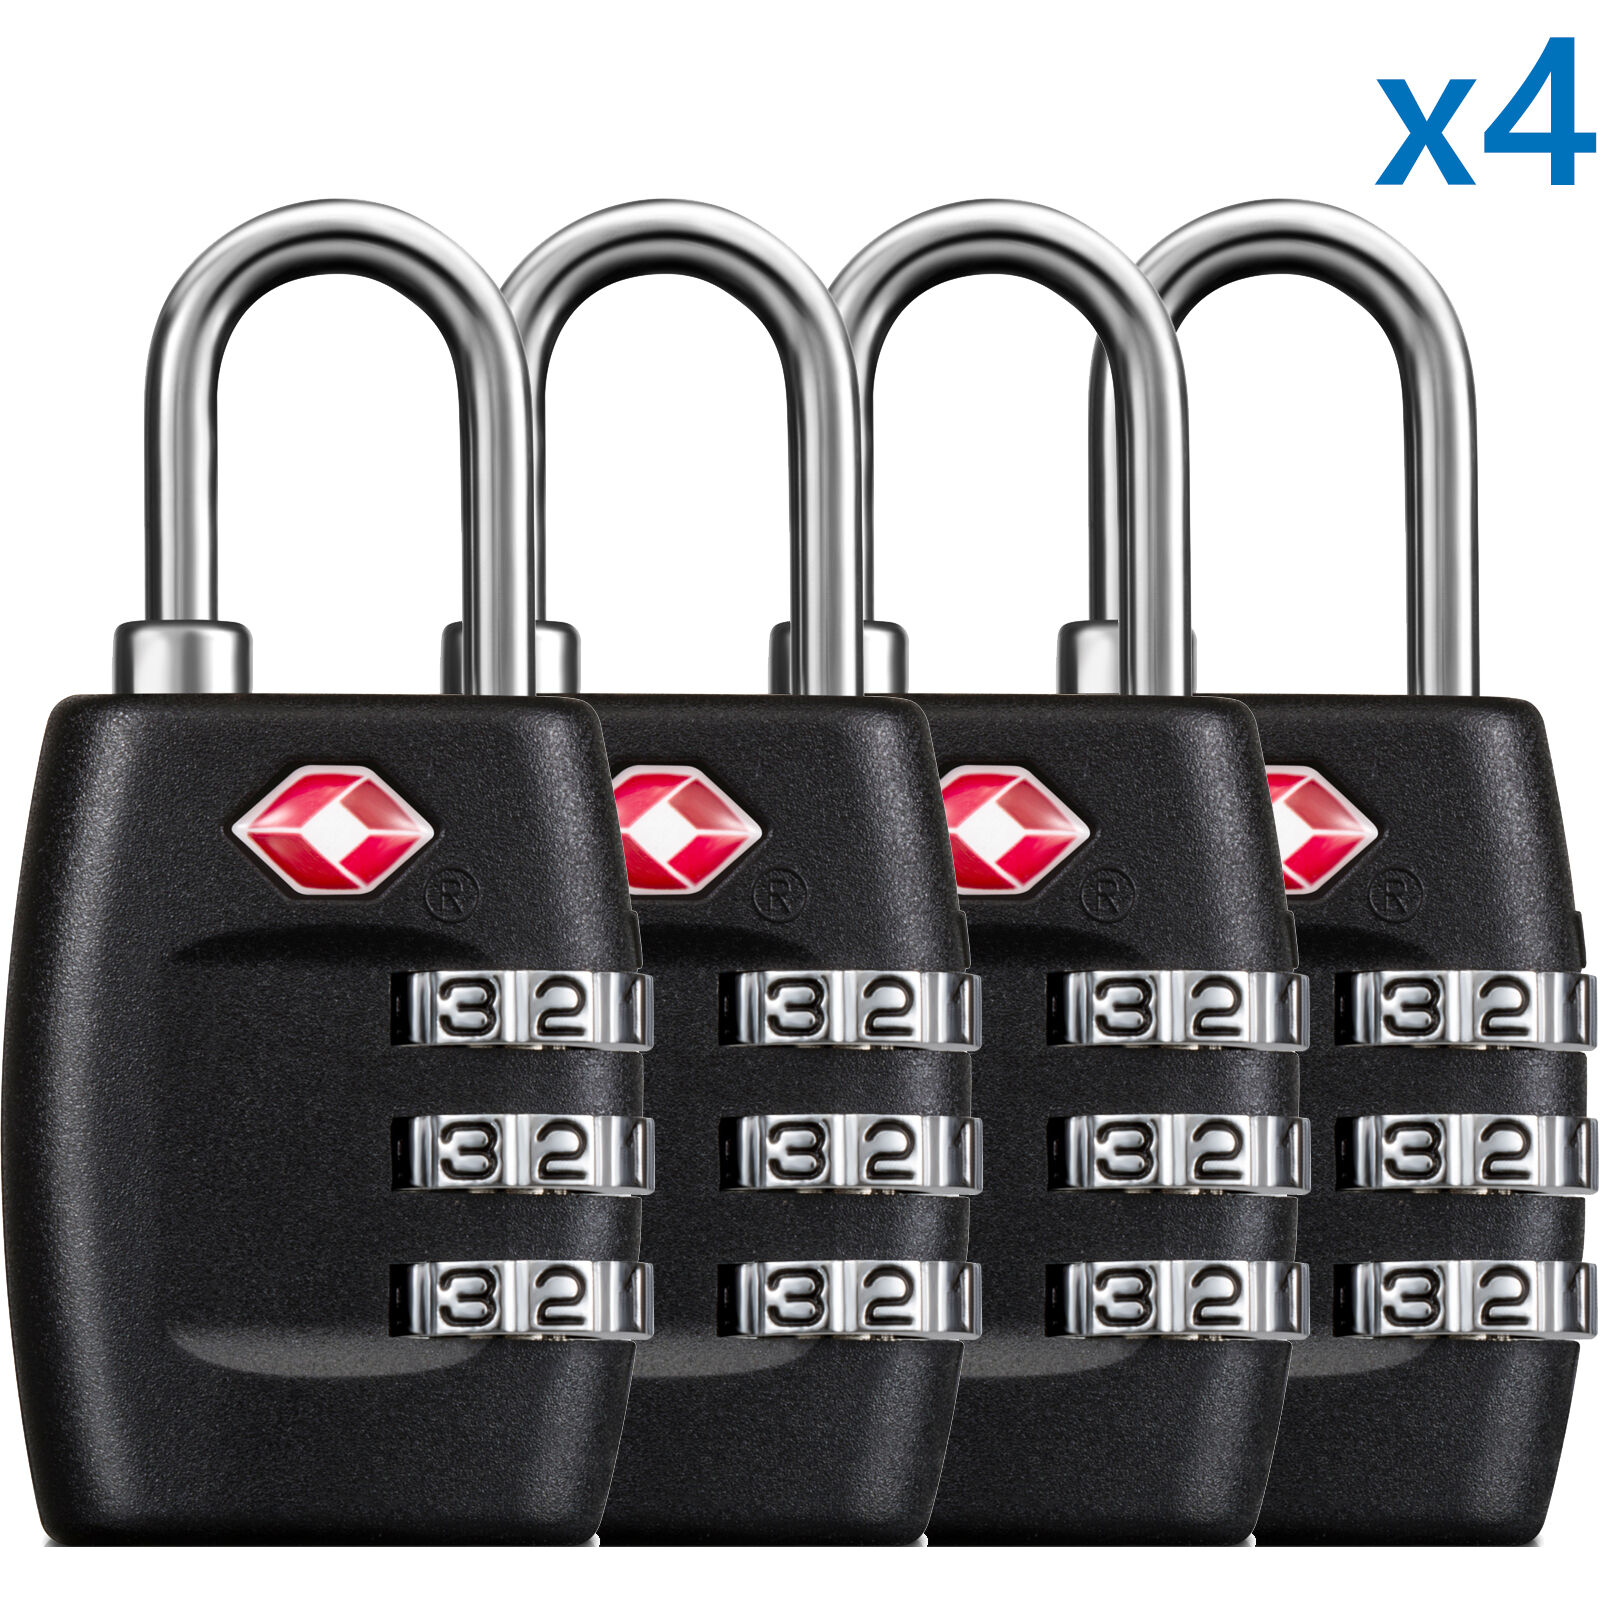 Купить BG USA - BG 4 x TSA Lock Travel Luggage 3 Digit Combination Resettable NEW TL01 (4 pcs)